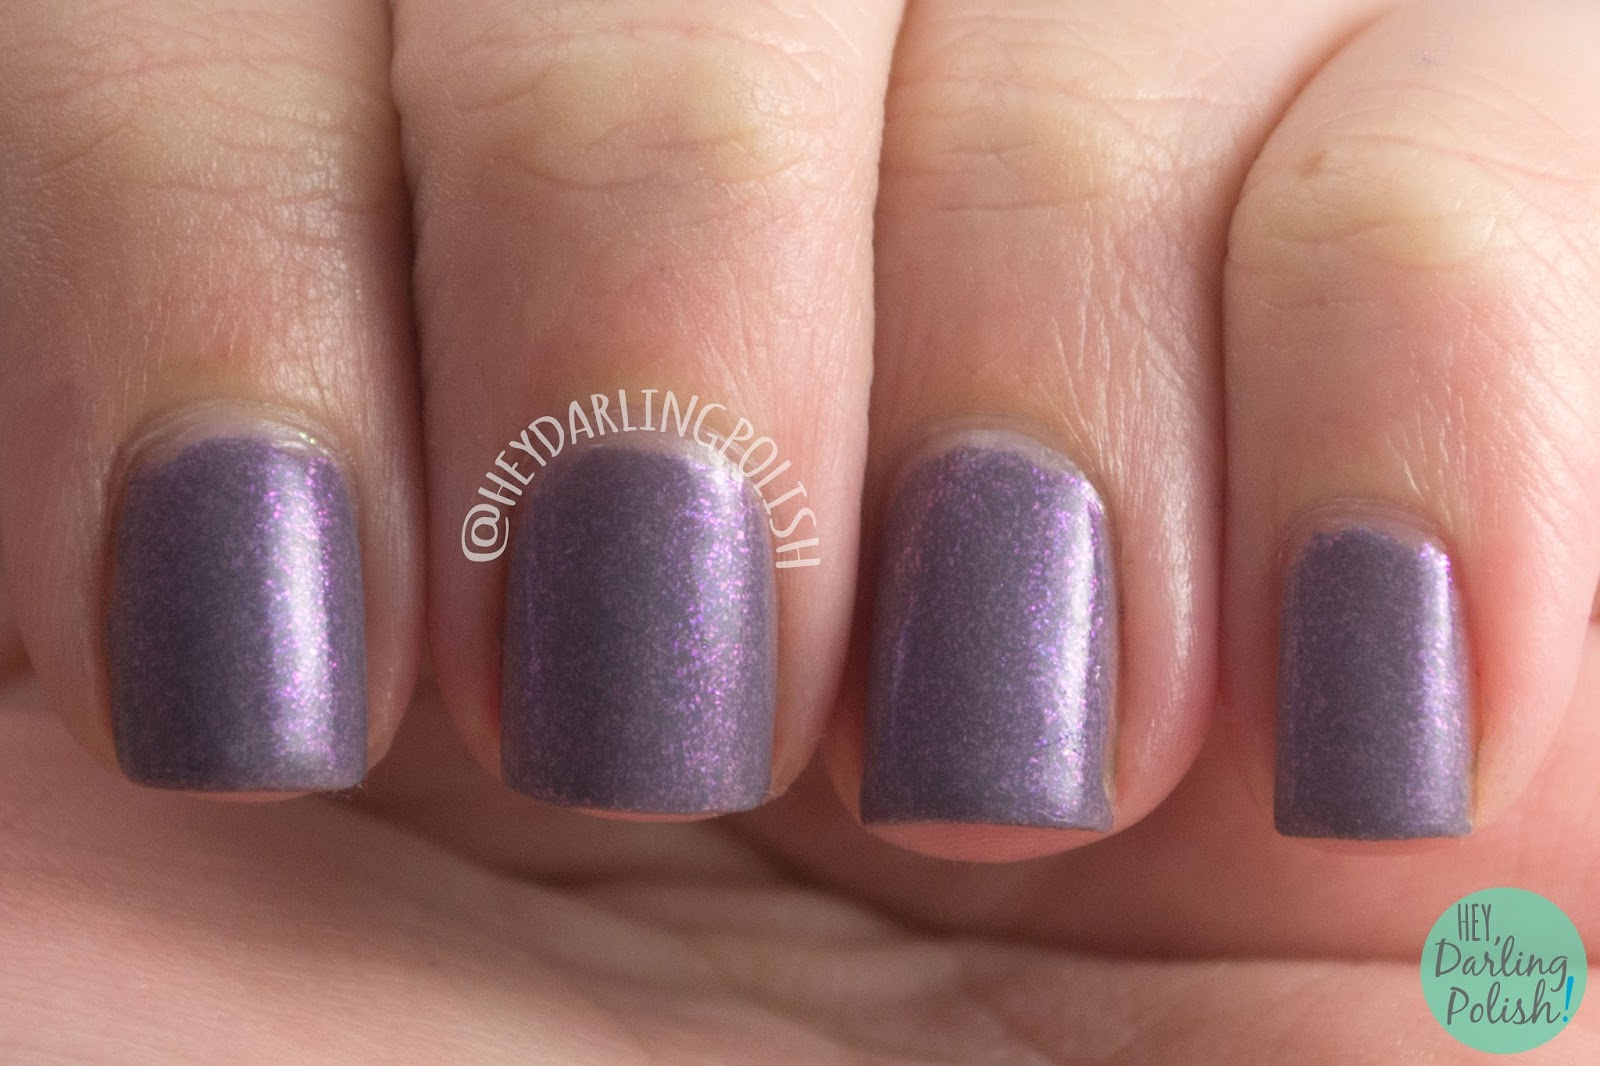 beauty within, purple, flakies, nails, nail polish, indie, indie polish, indie nail polish, hey darling polish, fair maiden polish, be your own heroine